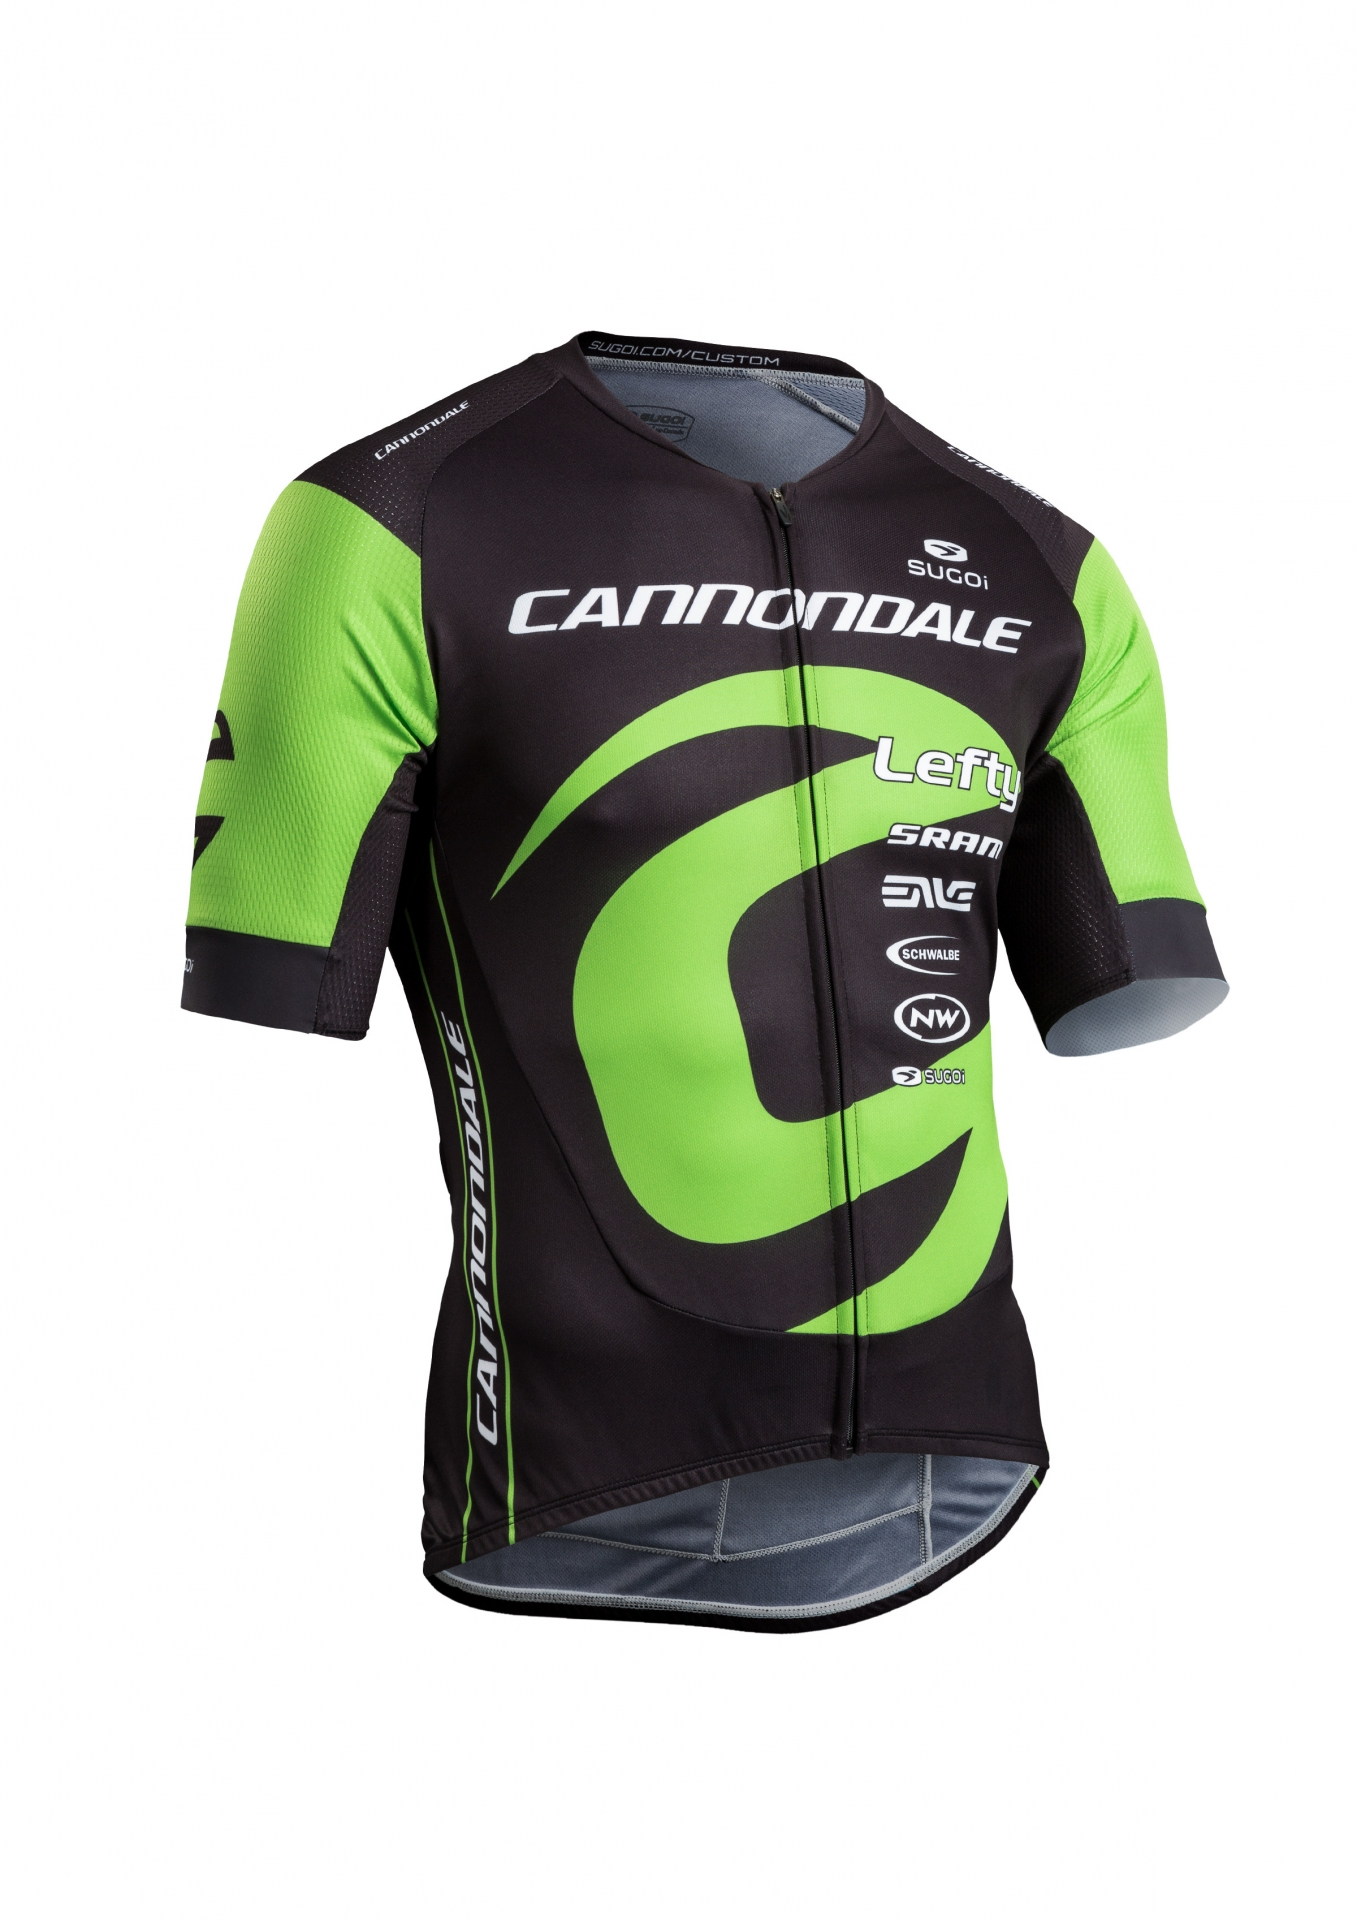 Maillot Cannondale Training Jersey Factory Racing CFR - M